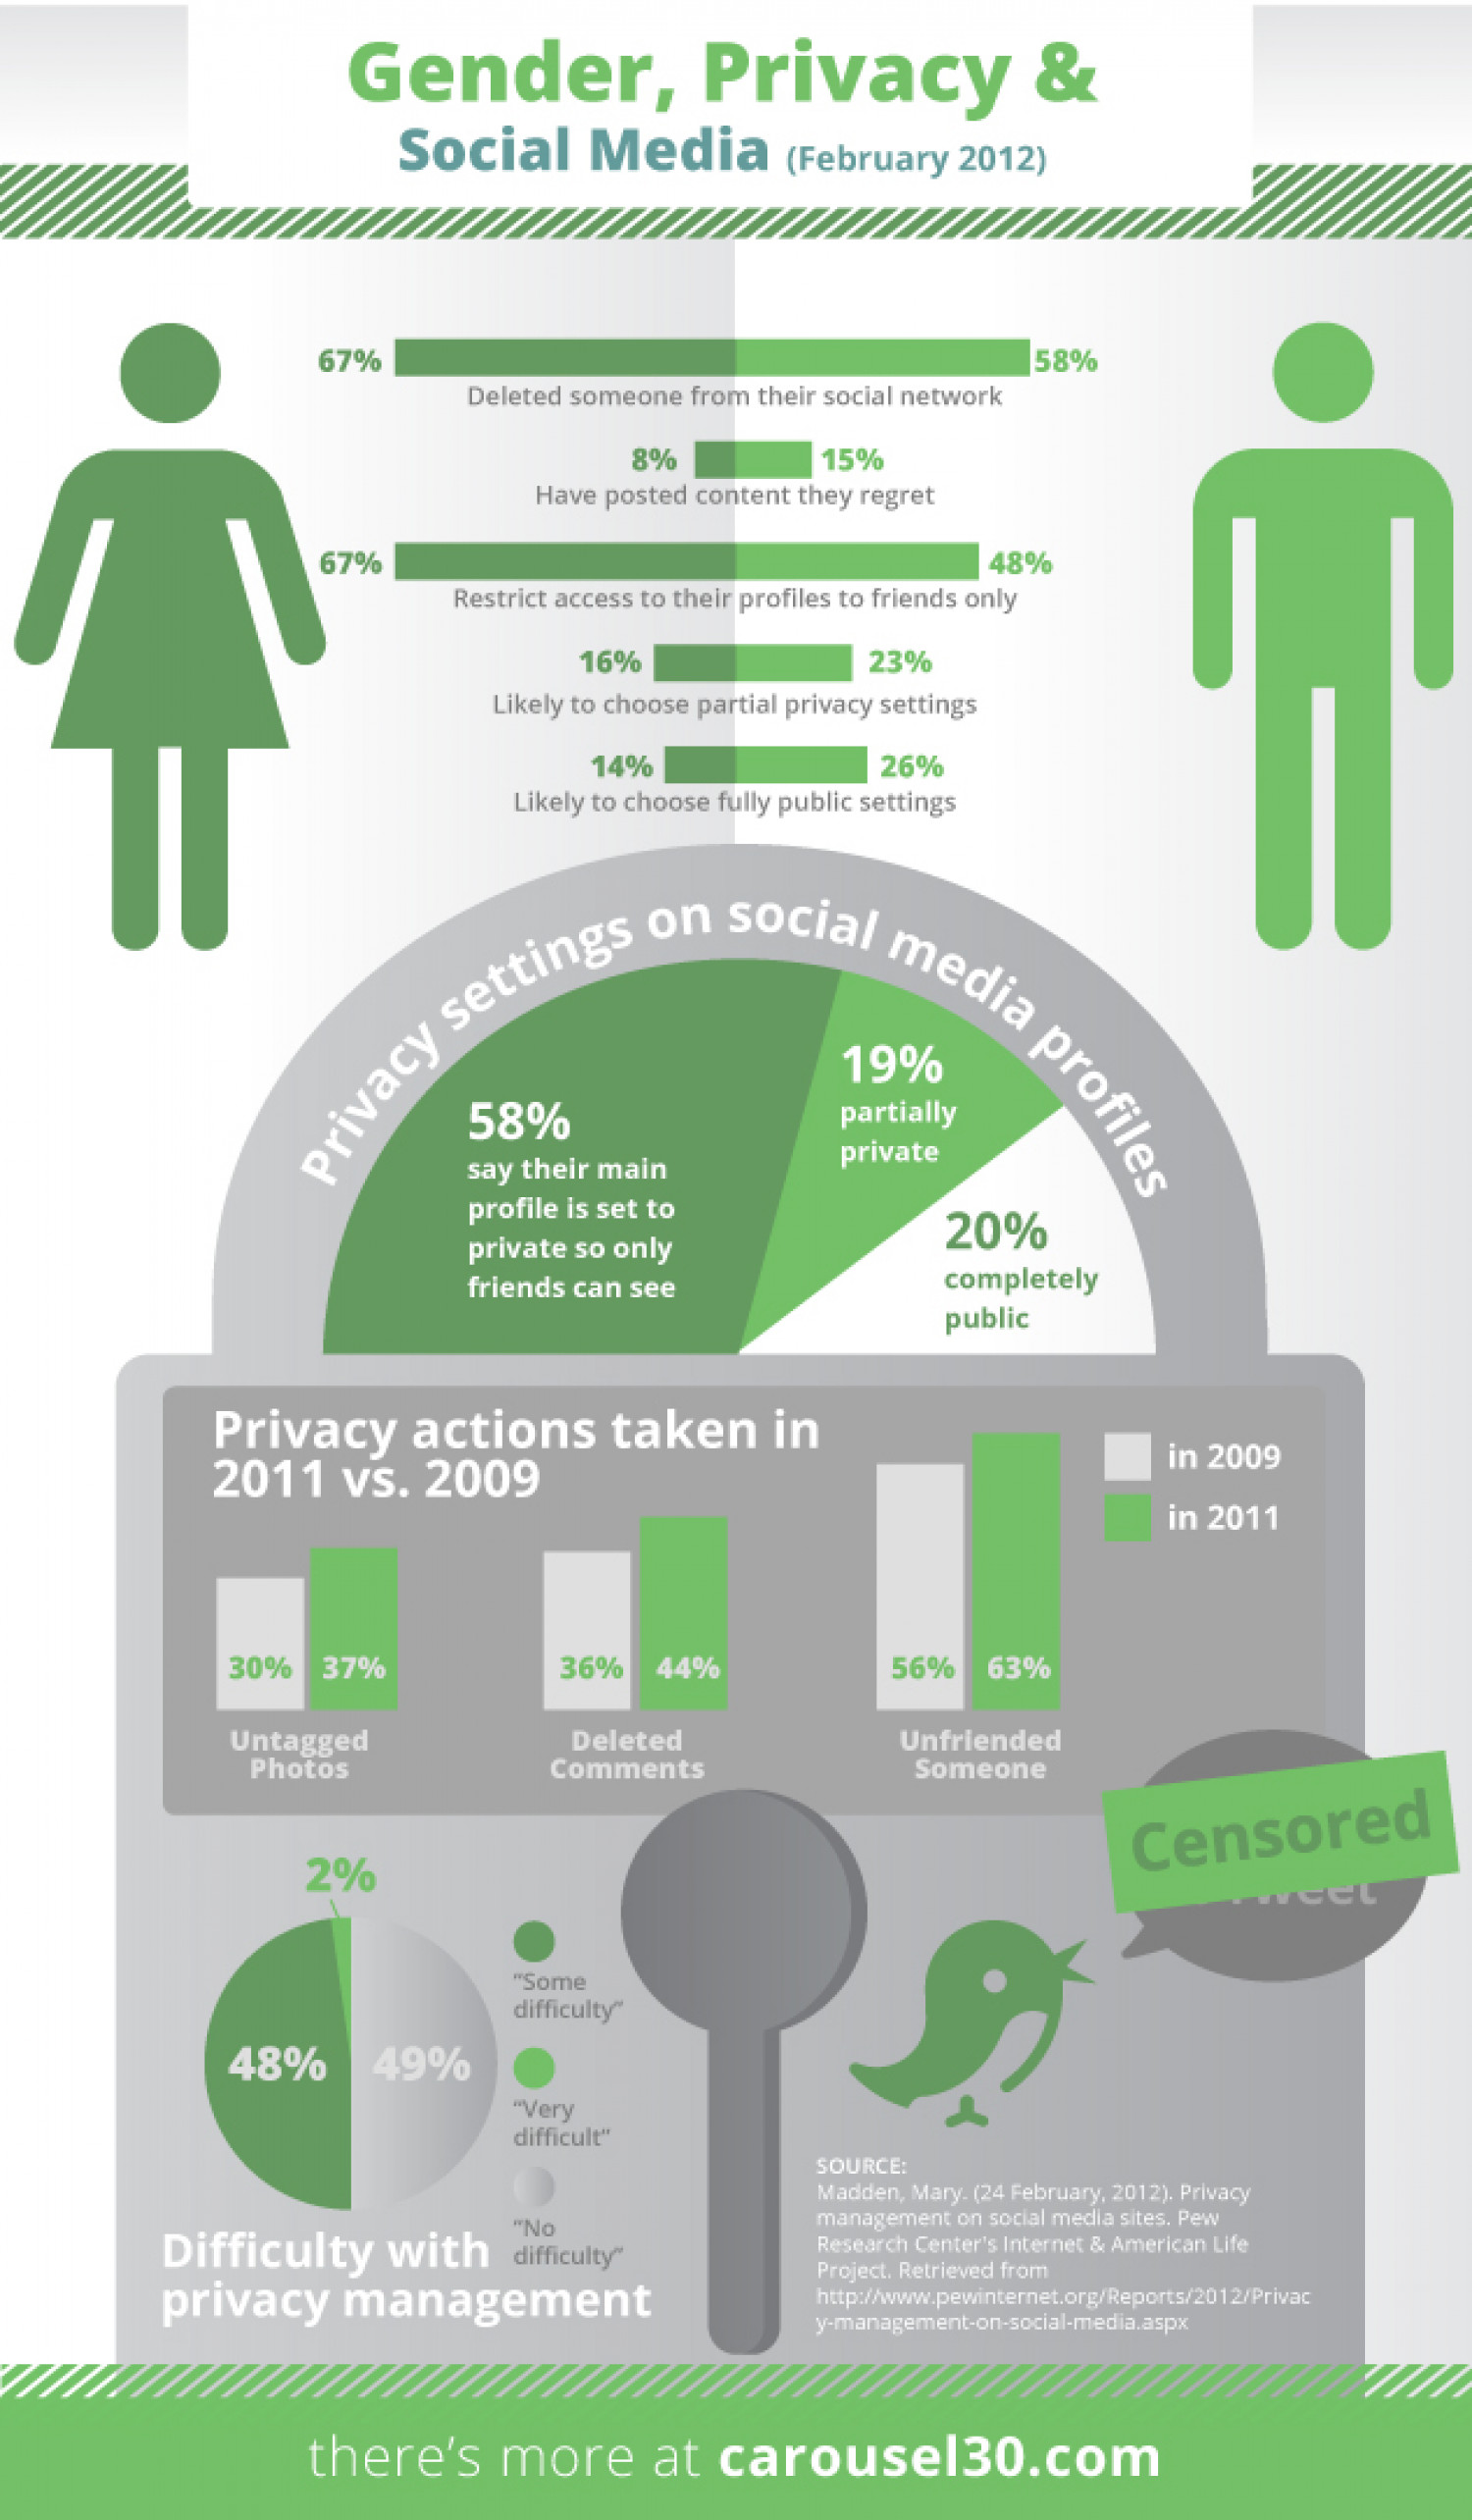 Gender, Privacy & Social Media Infographic